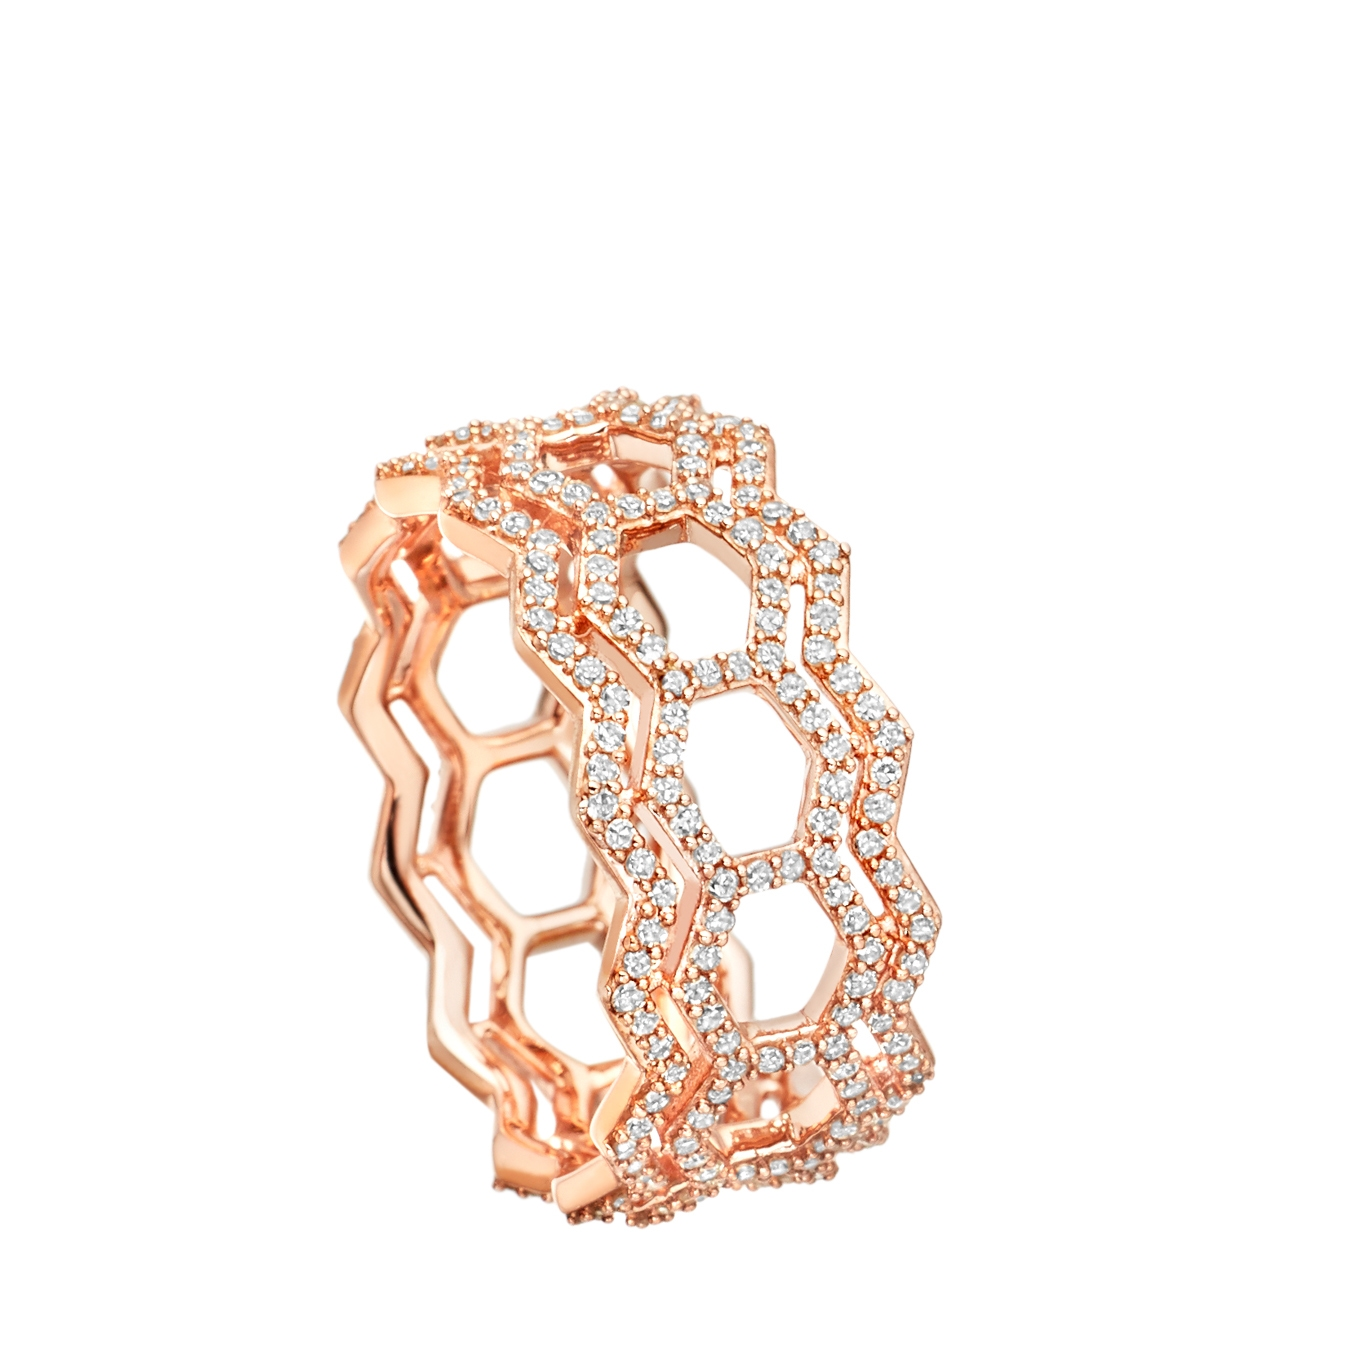 Double Varro Honeycomb Diamond Ring